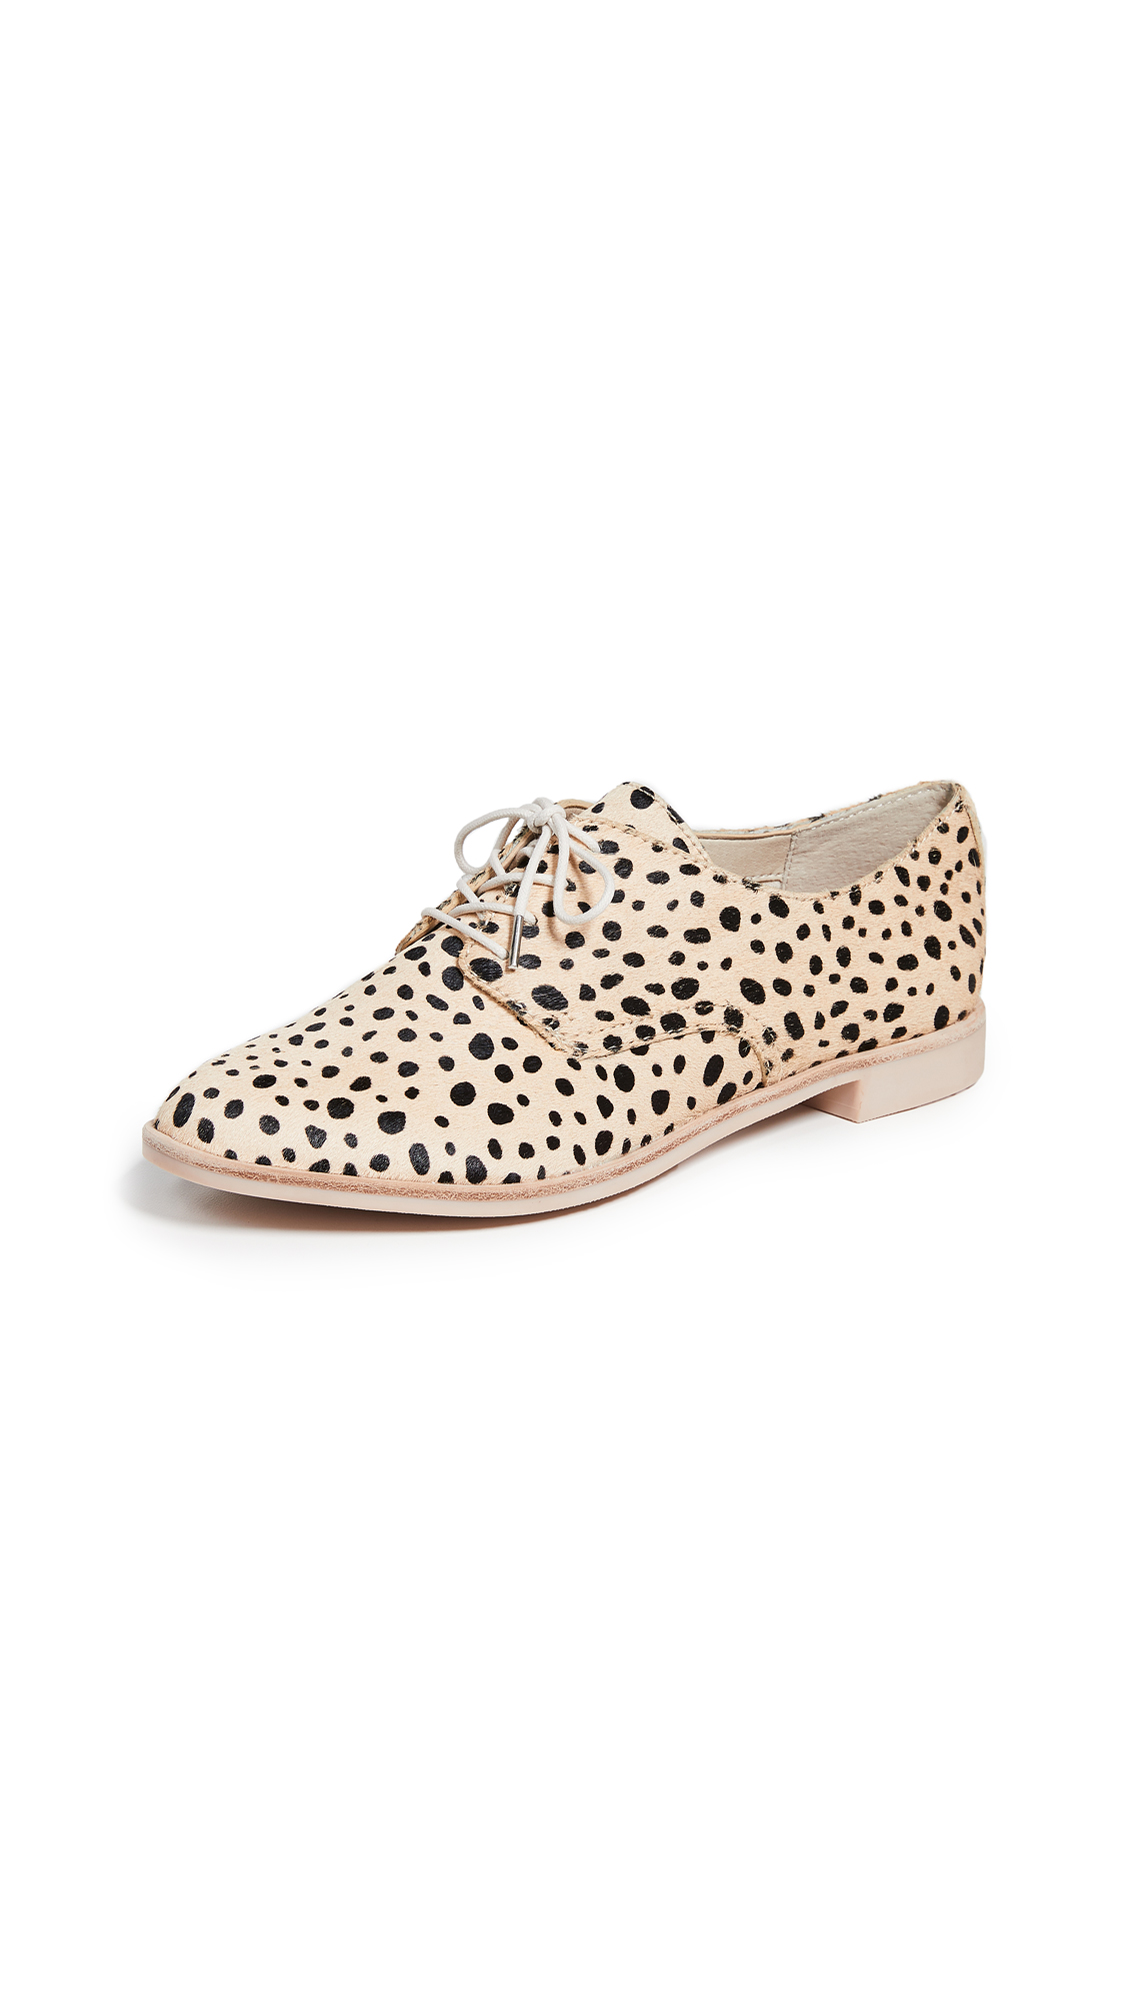 Dolce Vita Kyle Lace Up Oxfords - Leopard